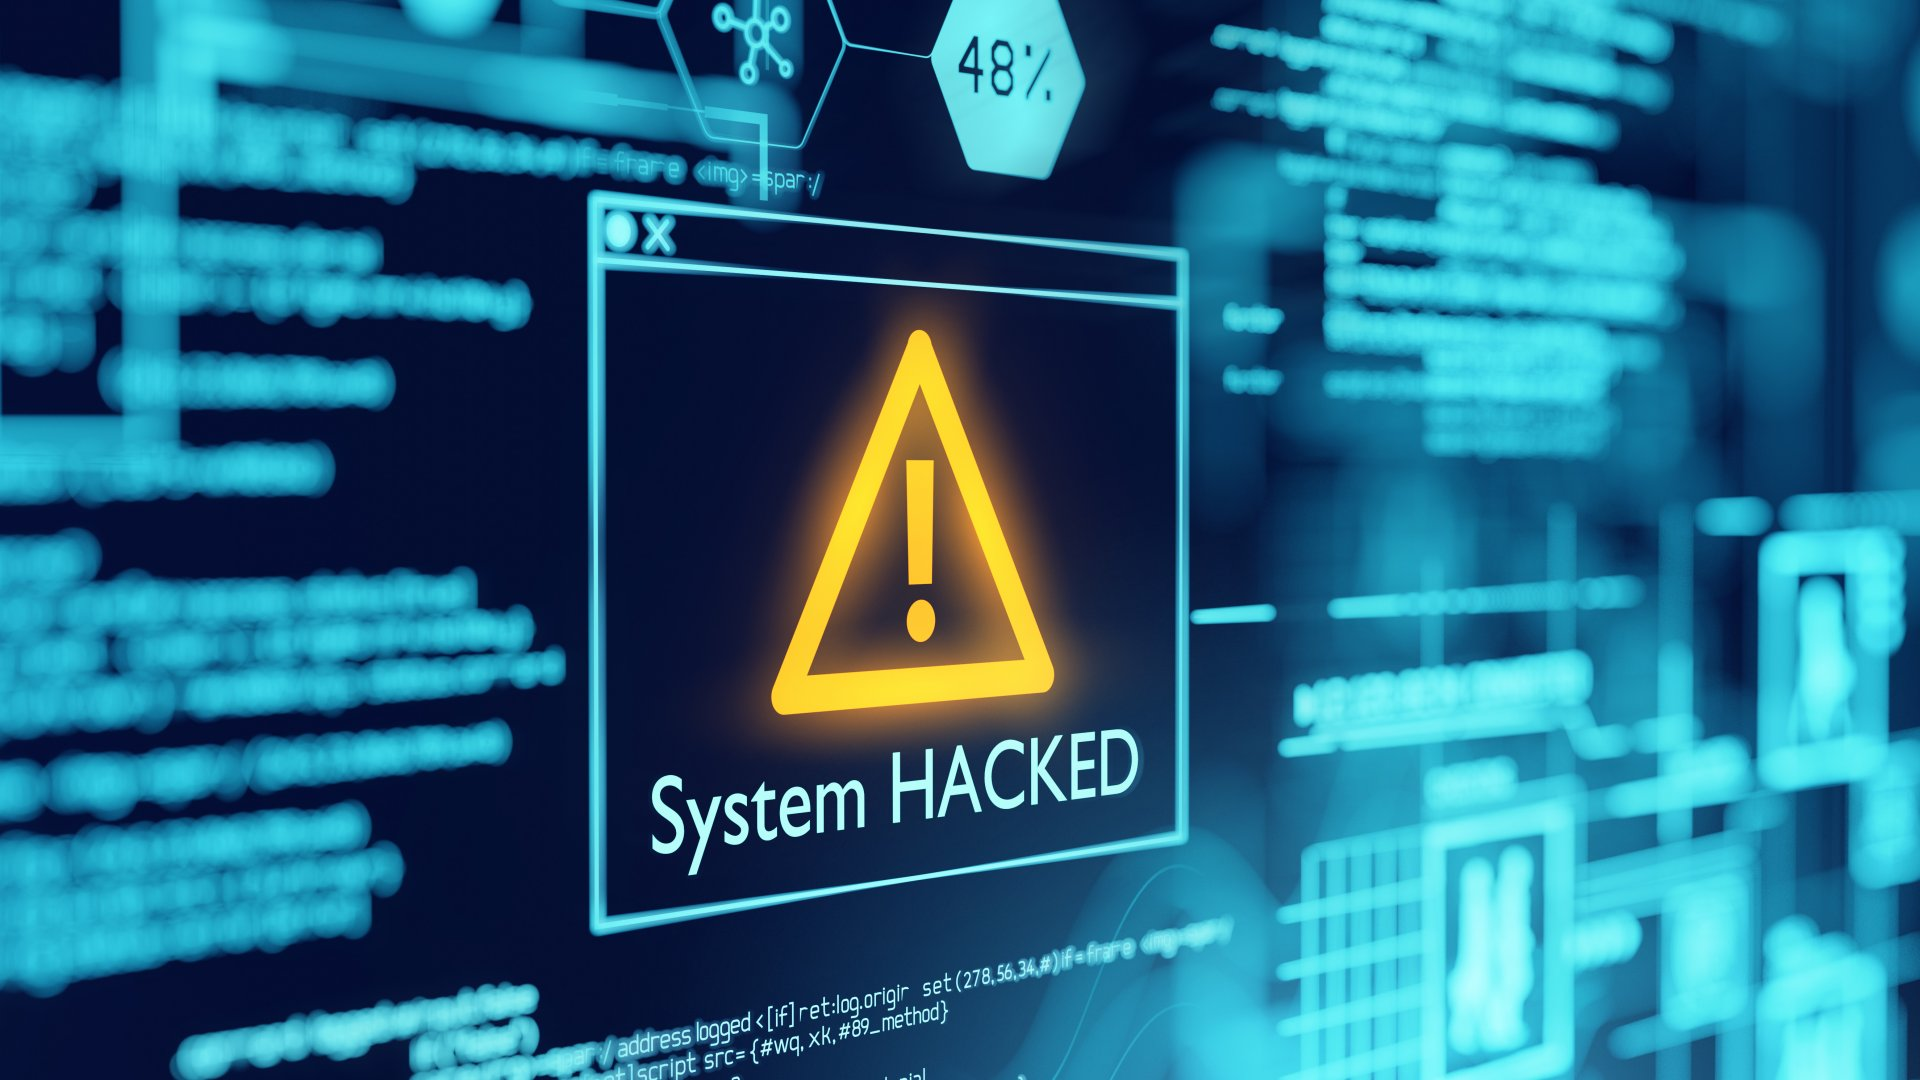 Cybercriminals Target SMBs, but New Technology Helps Fight Them Off